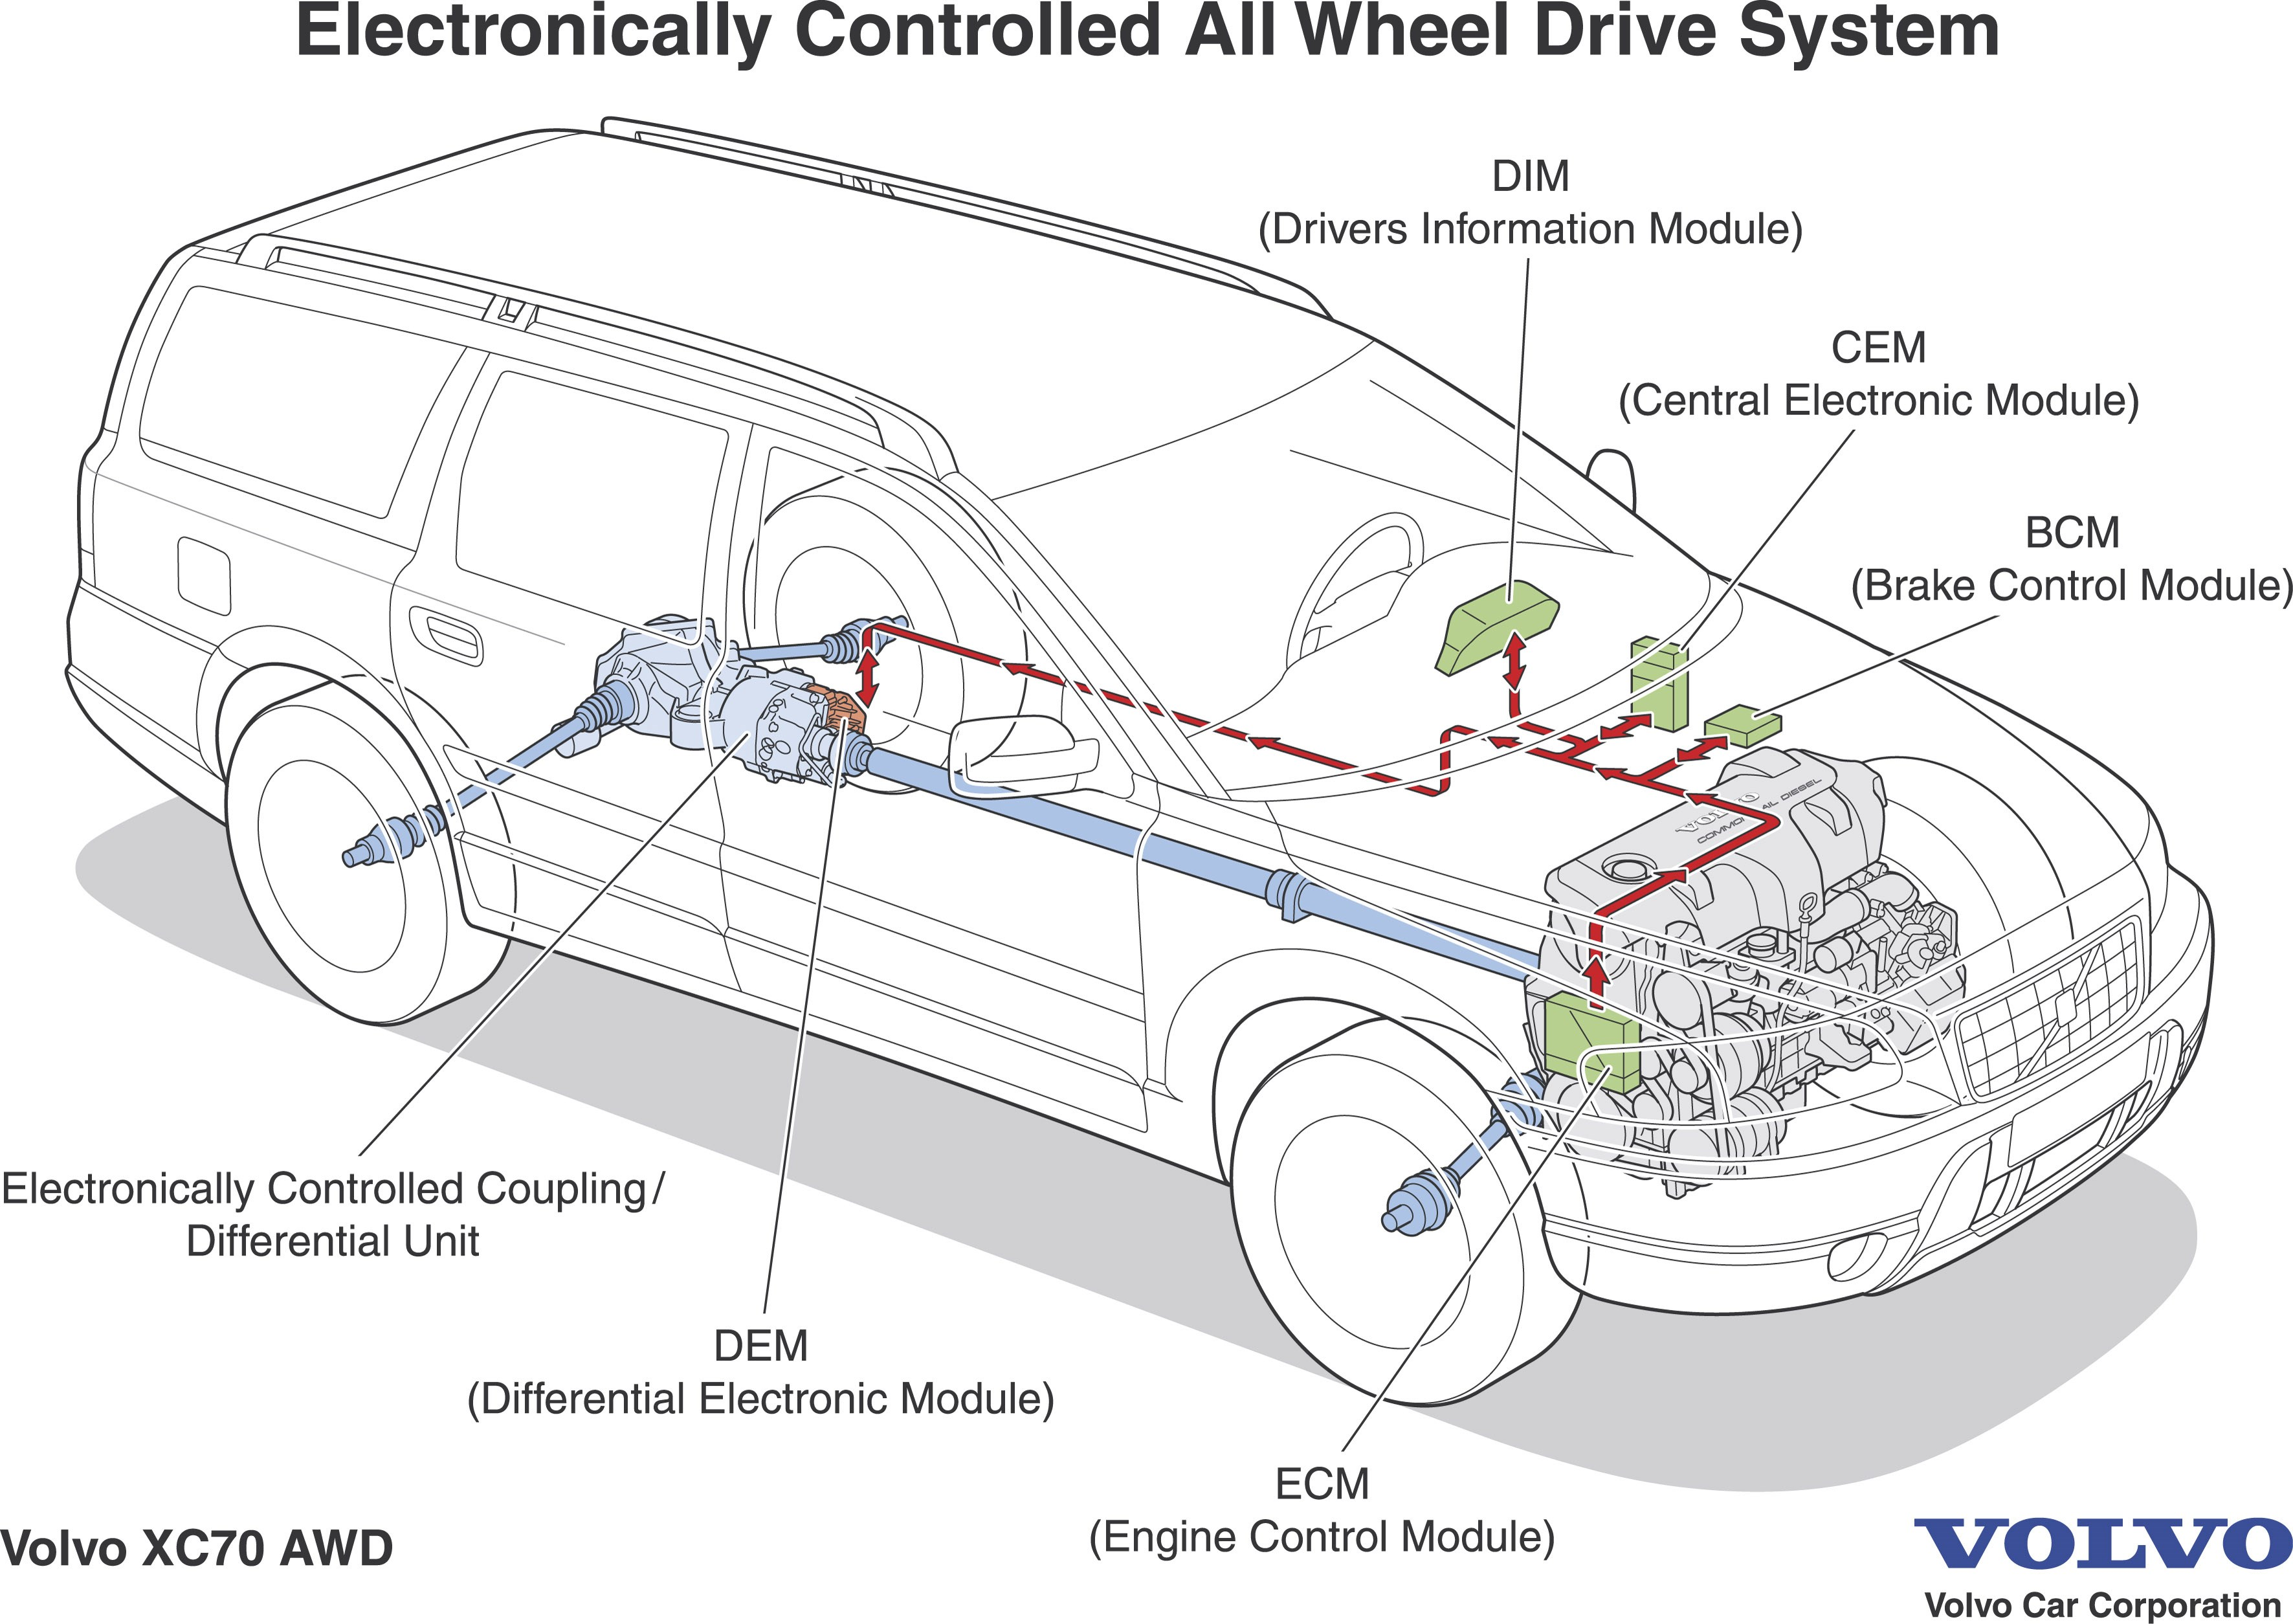 Volvo Xc70 Engine Diagram Web About Wiring 2001 C70 Awd Systems Guide Explanations Diagrams Questions Answered Rh Matthewsvolvosite Com 2005